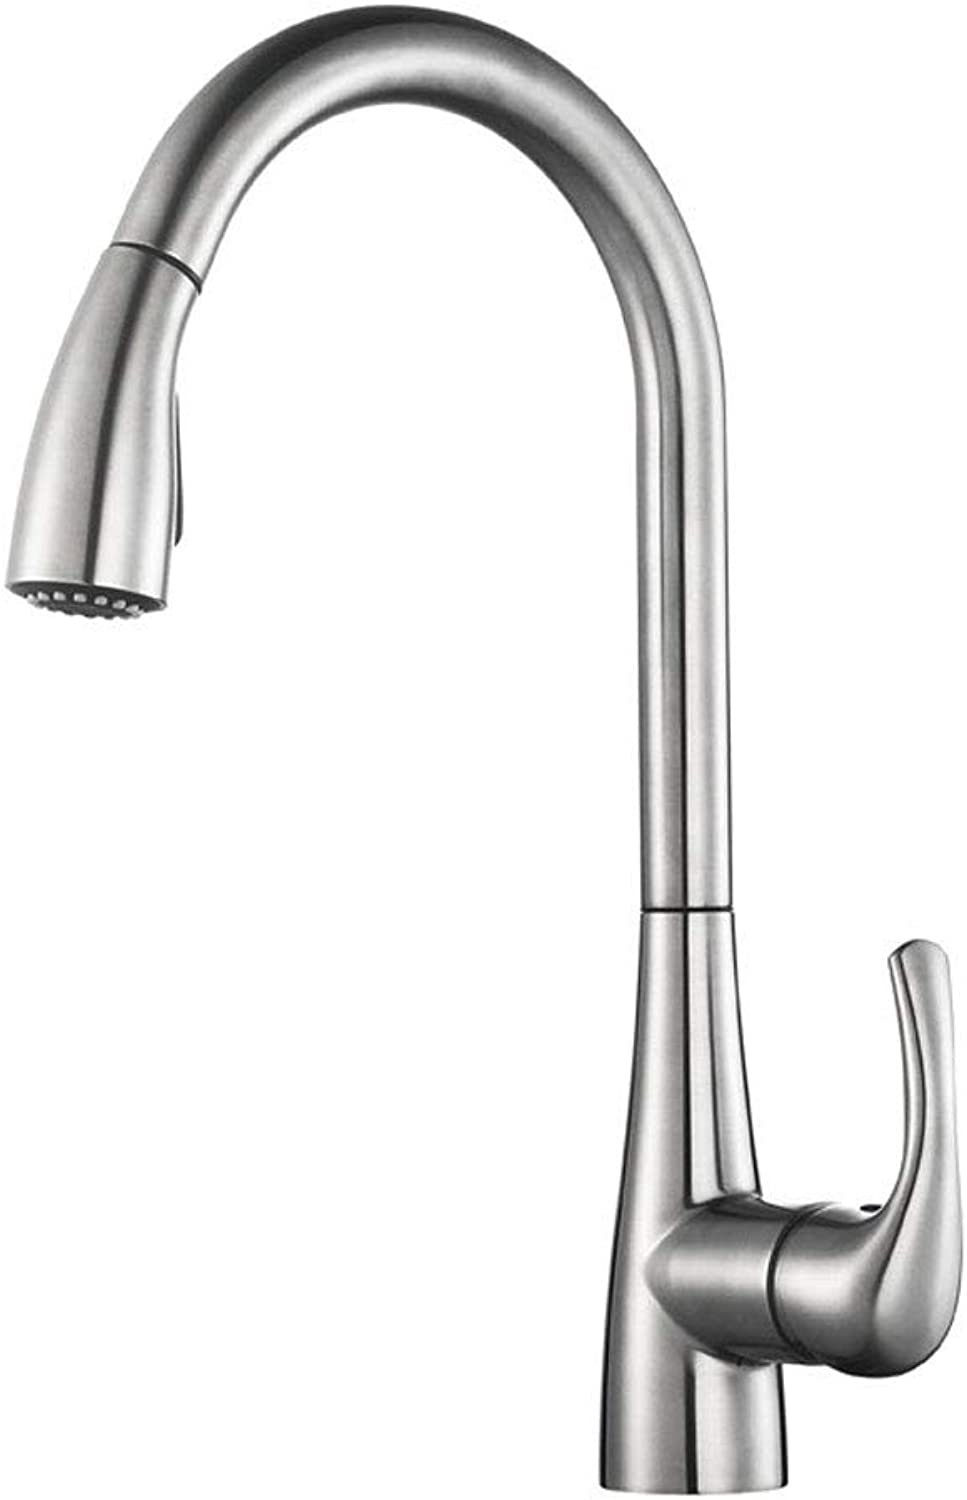 LXKY Faucet - kitchen hot and cold faucet pull-out dishwashing pan full copper, for kitchen and bathroom hotel